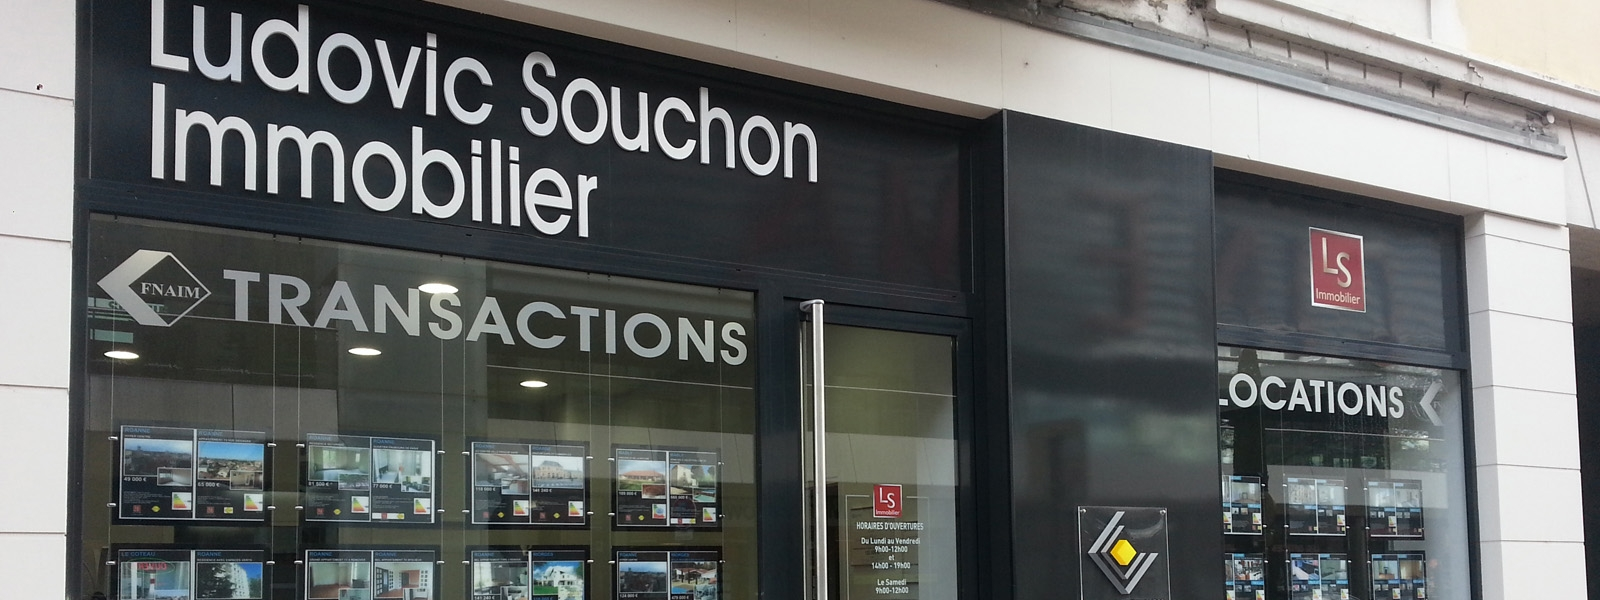 Ludovic Souchon Immobilier